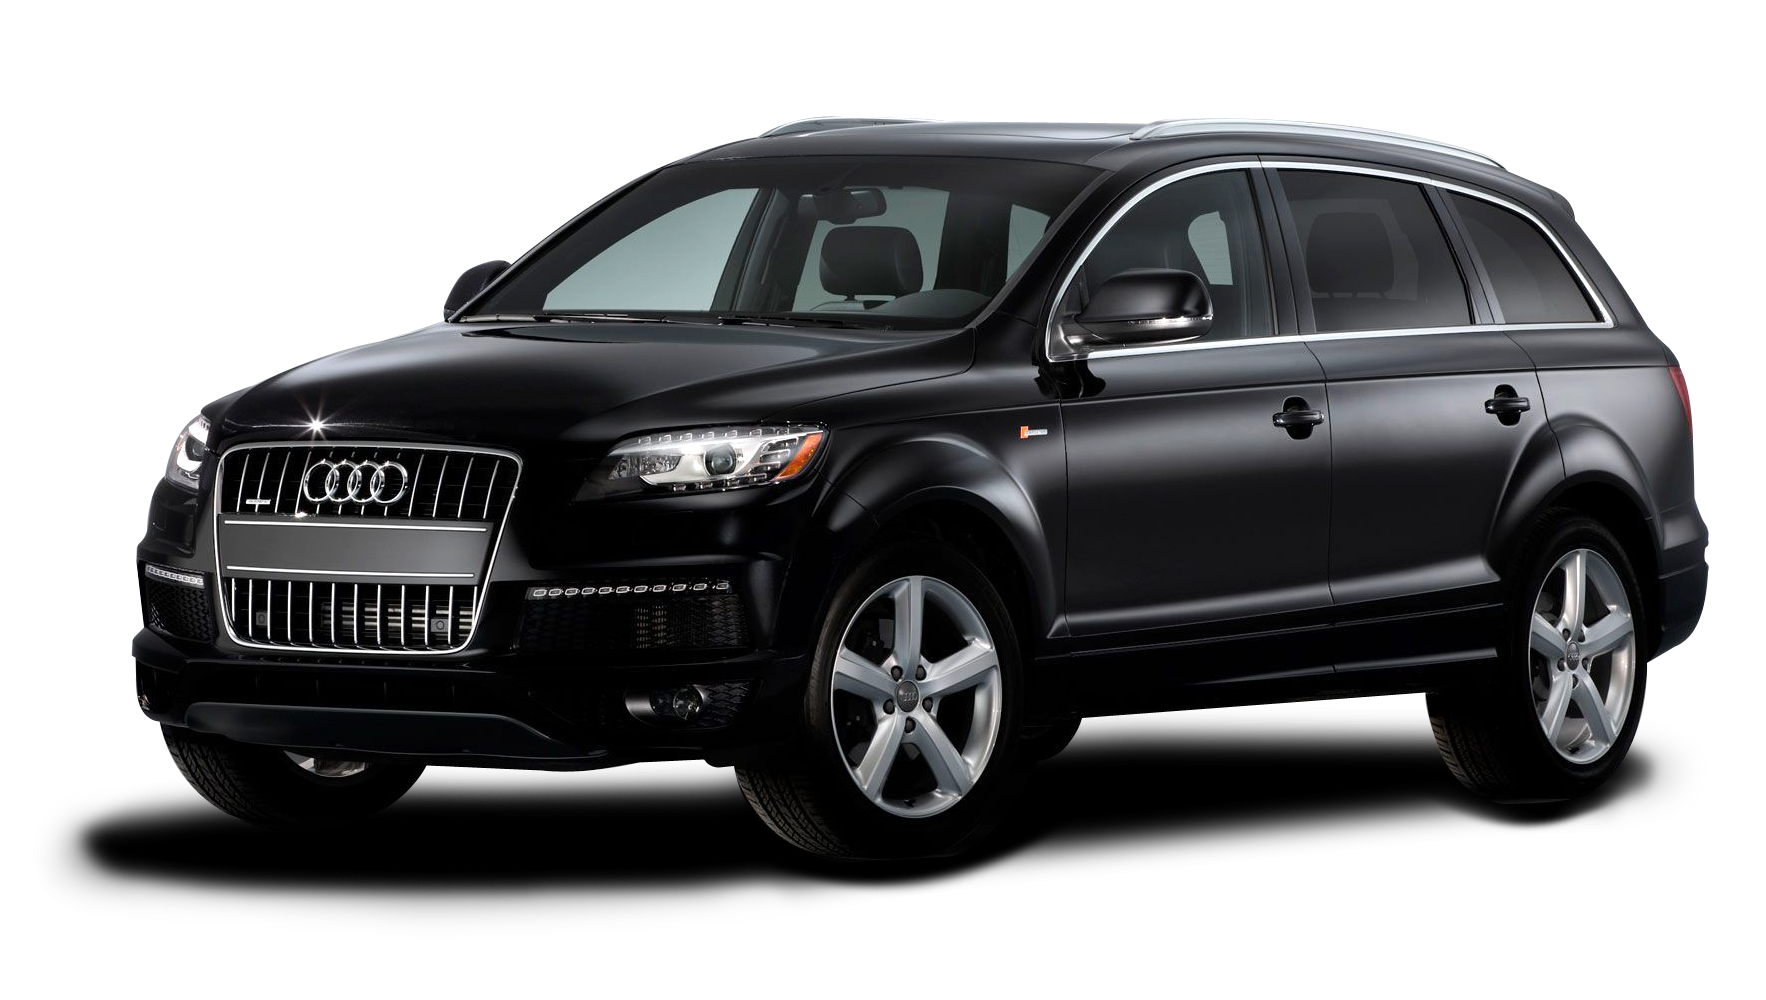 Audi Q7 Car PNG Image Black Jeep